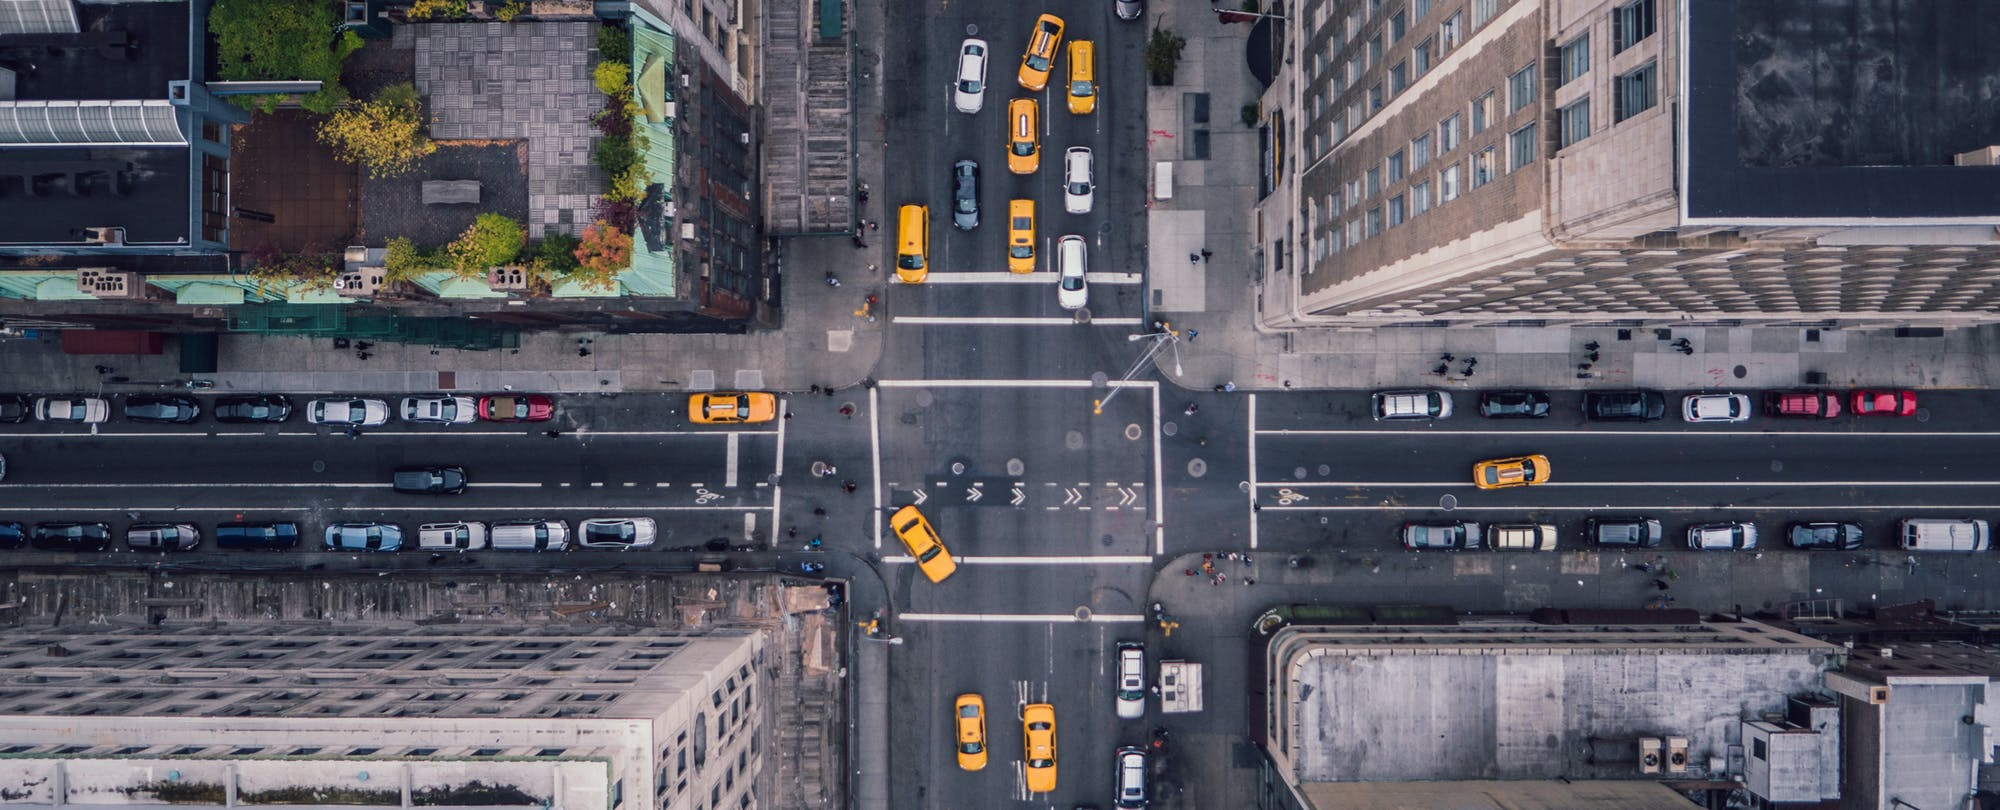 NYC Keeps Its Edtech Accelerator Revving With New Funders and Markets